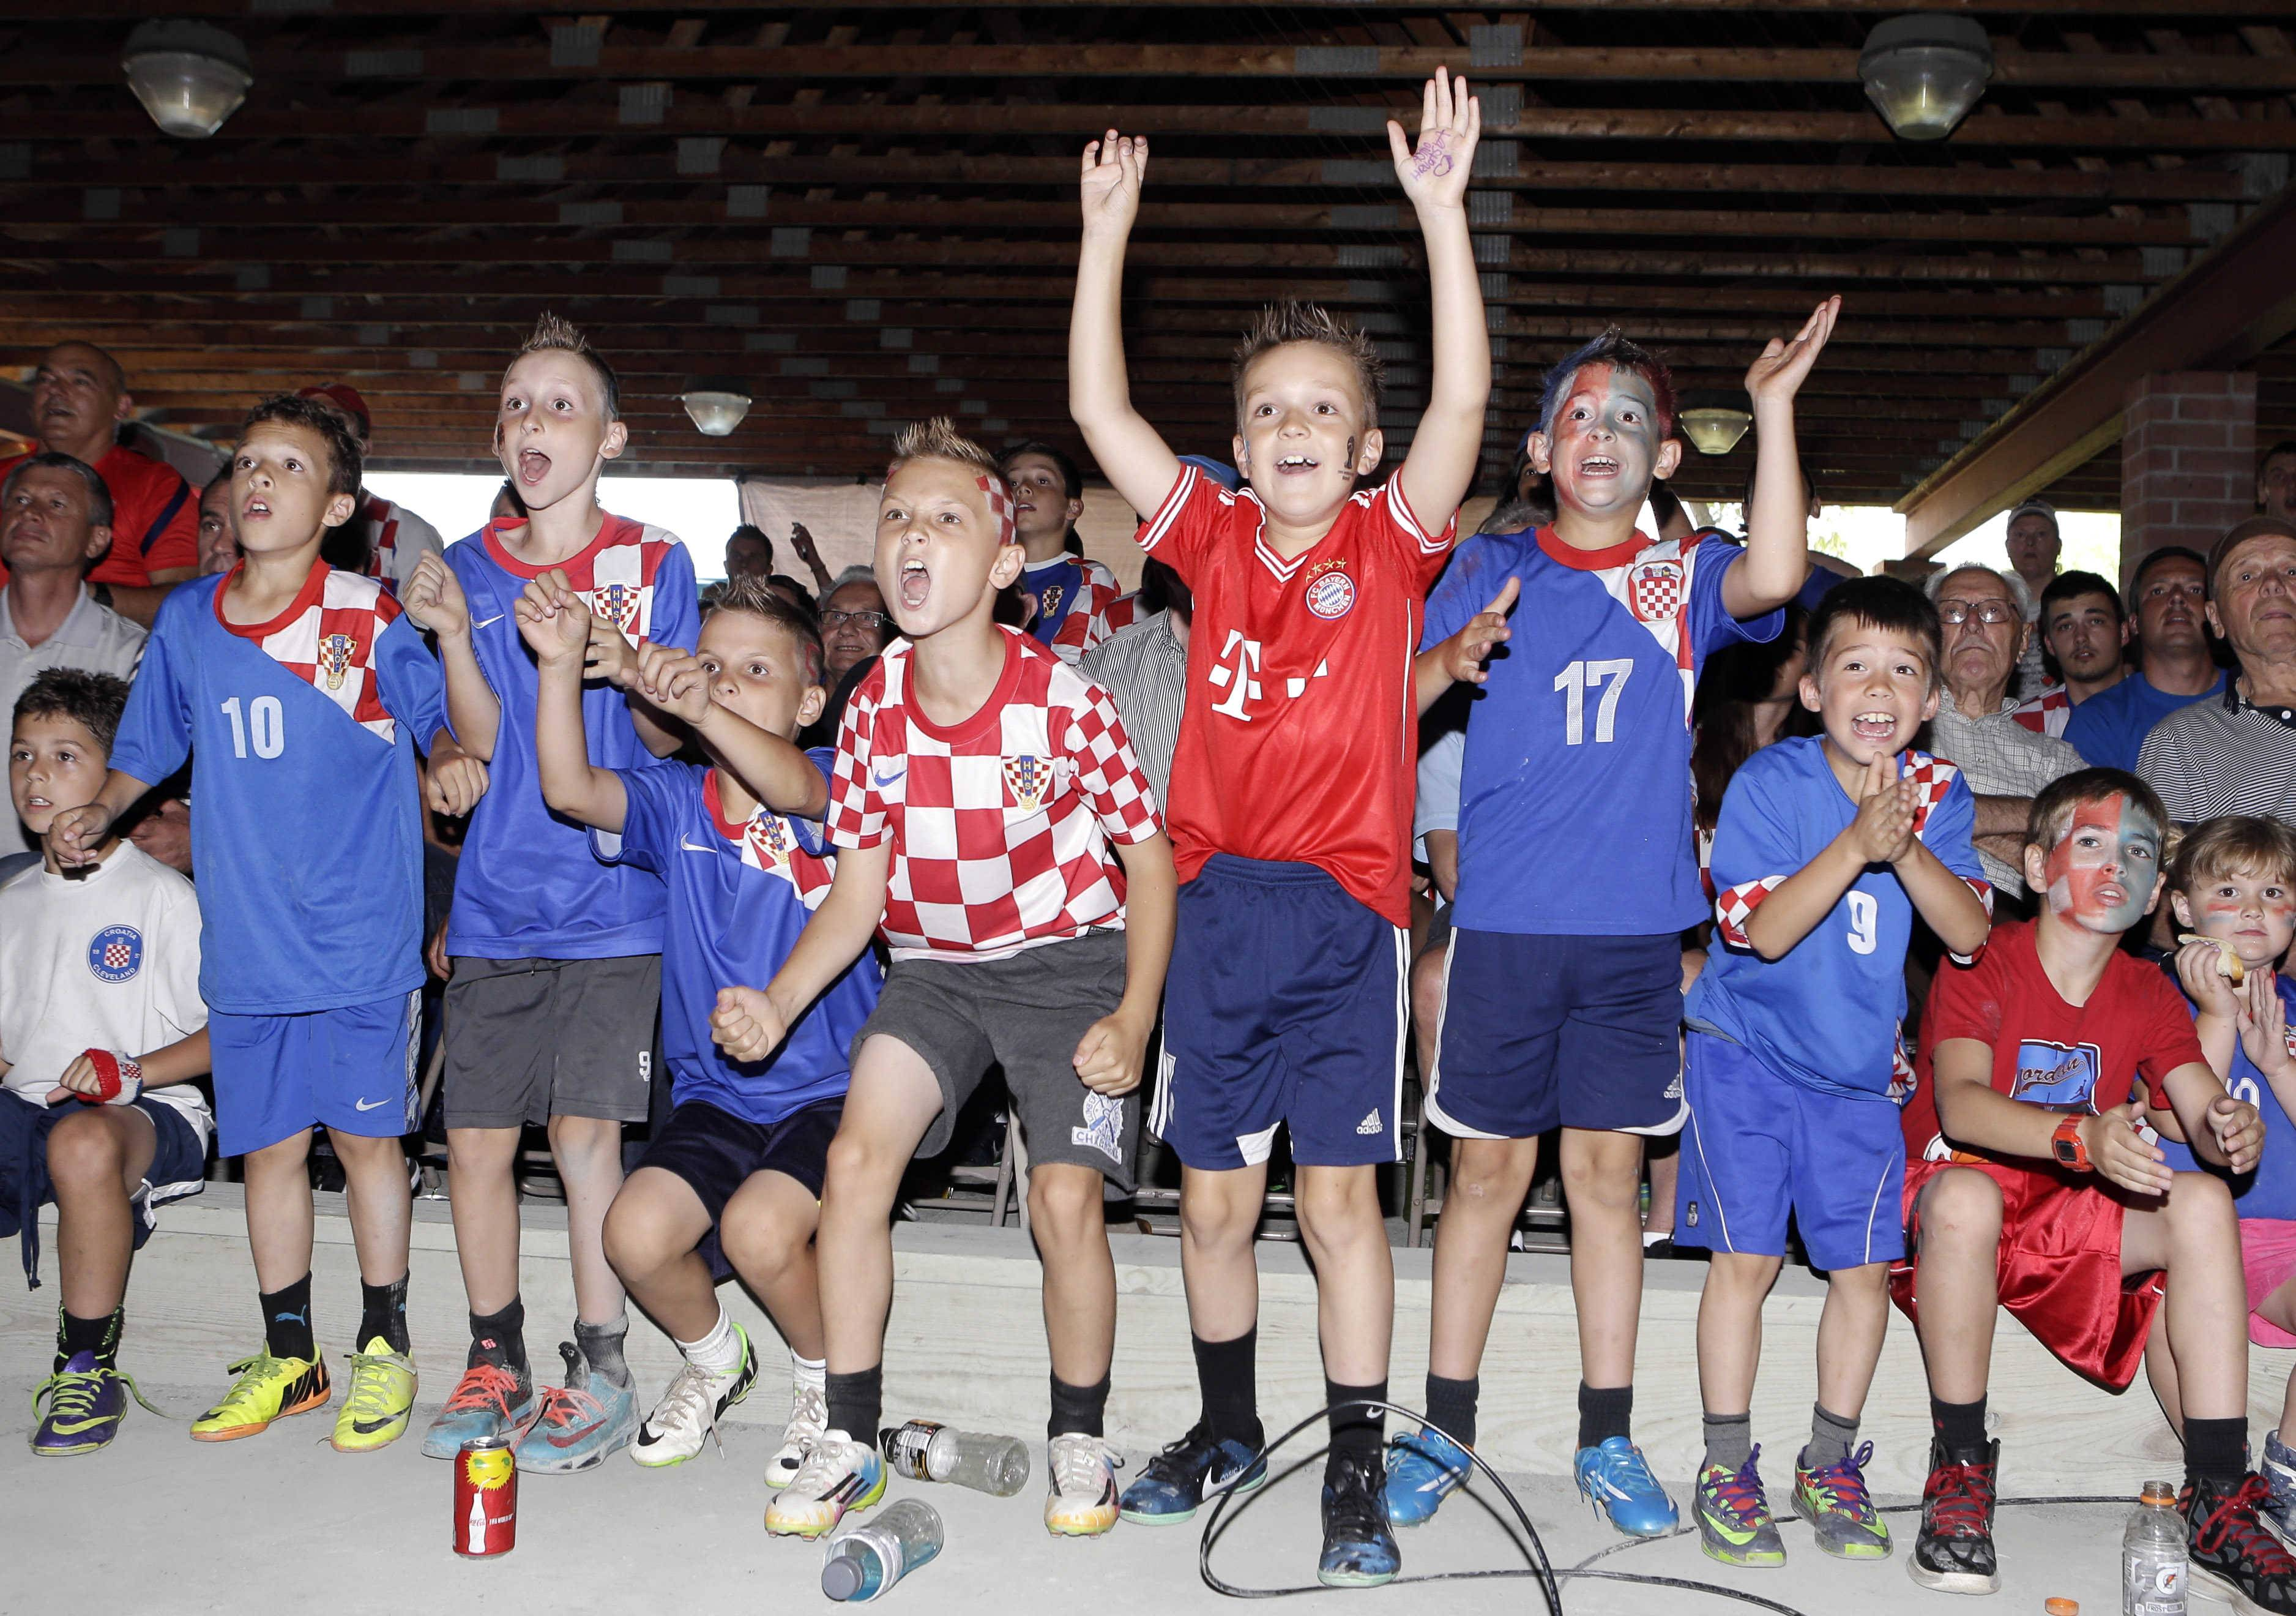 Children cheer for Croatia as they watch the world cup match between Croatia and Brazil at the Croatia Cleveland Soccer Club Thursday, June 12, 2014, in Eastlake, Ohio.